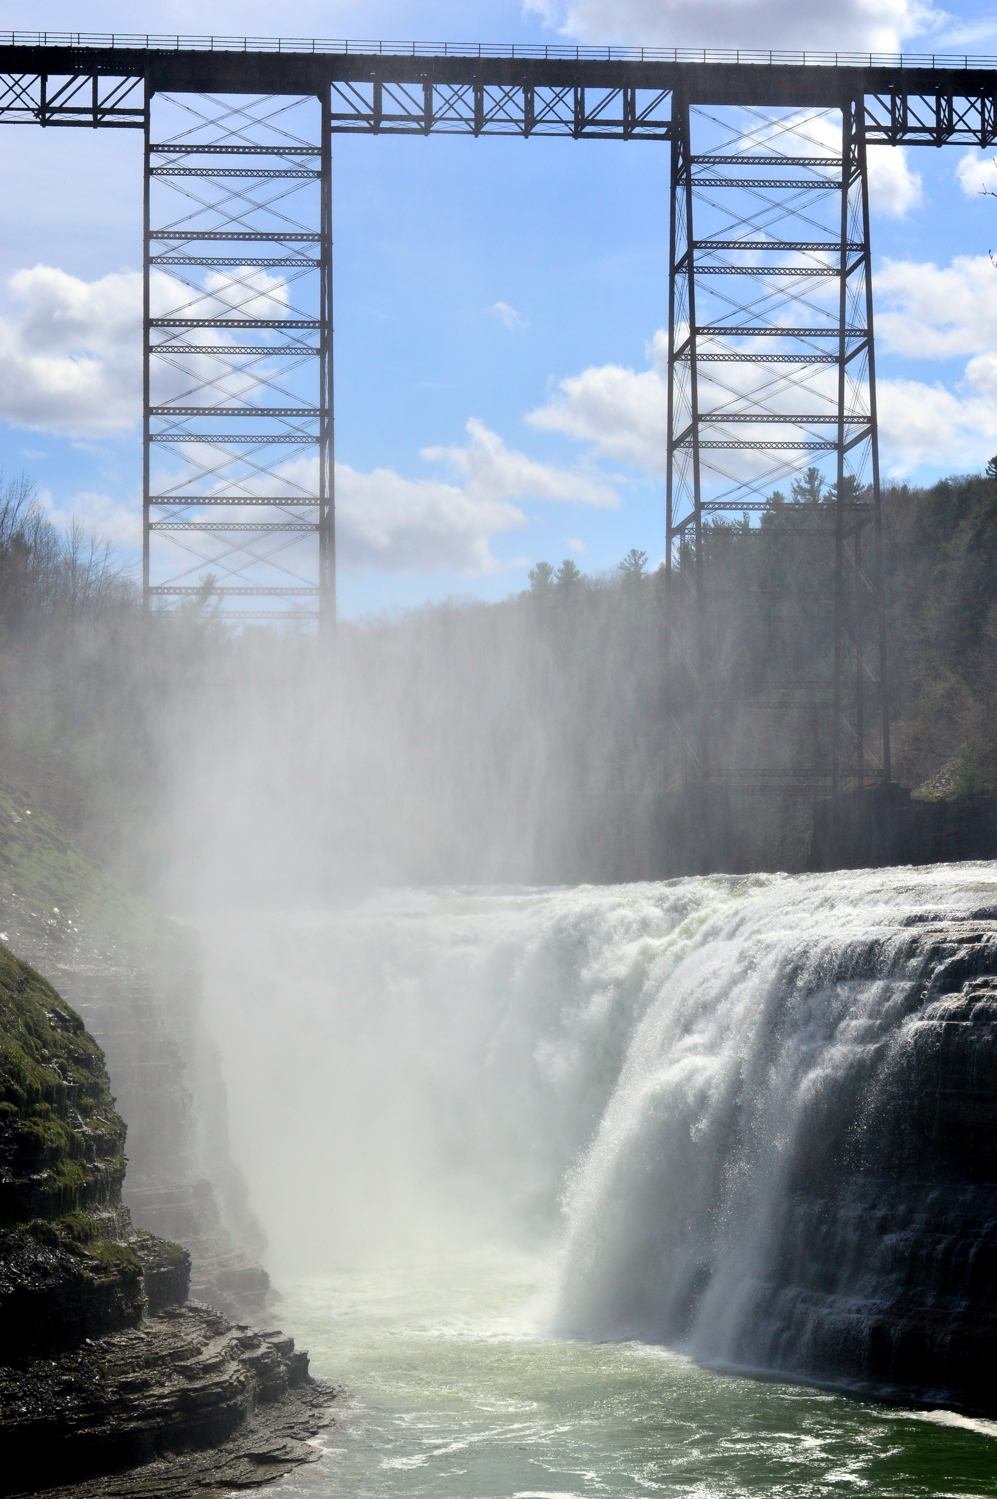 letchworth-state-park-upstate-new-york-things-to-do-travel-blogger 6